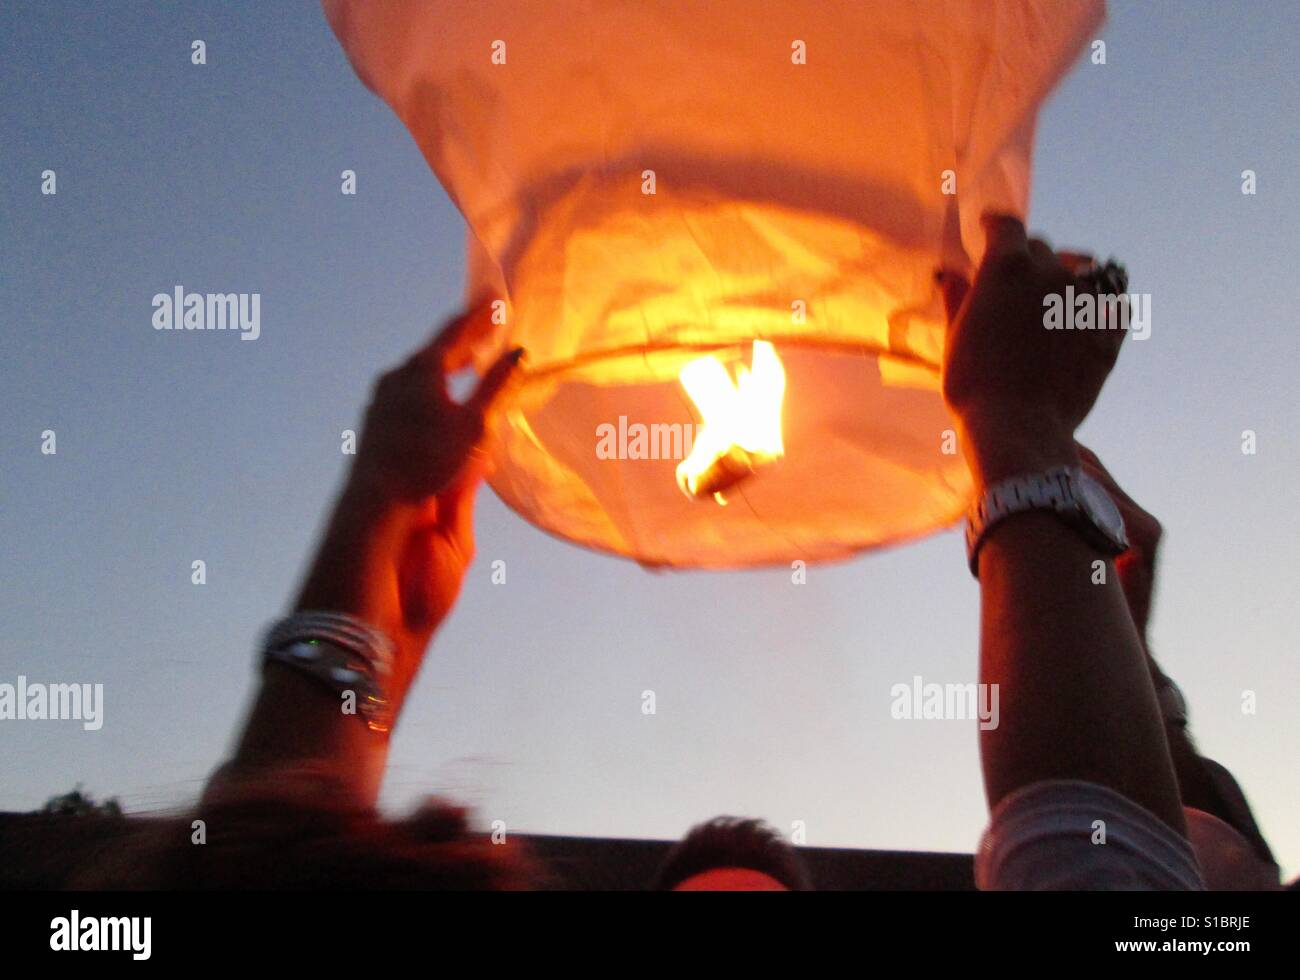 launch of the Chinese lantern at a wedding human hand real people Flame holding sky one person lifestyles Burning - Stock Image